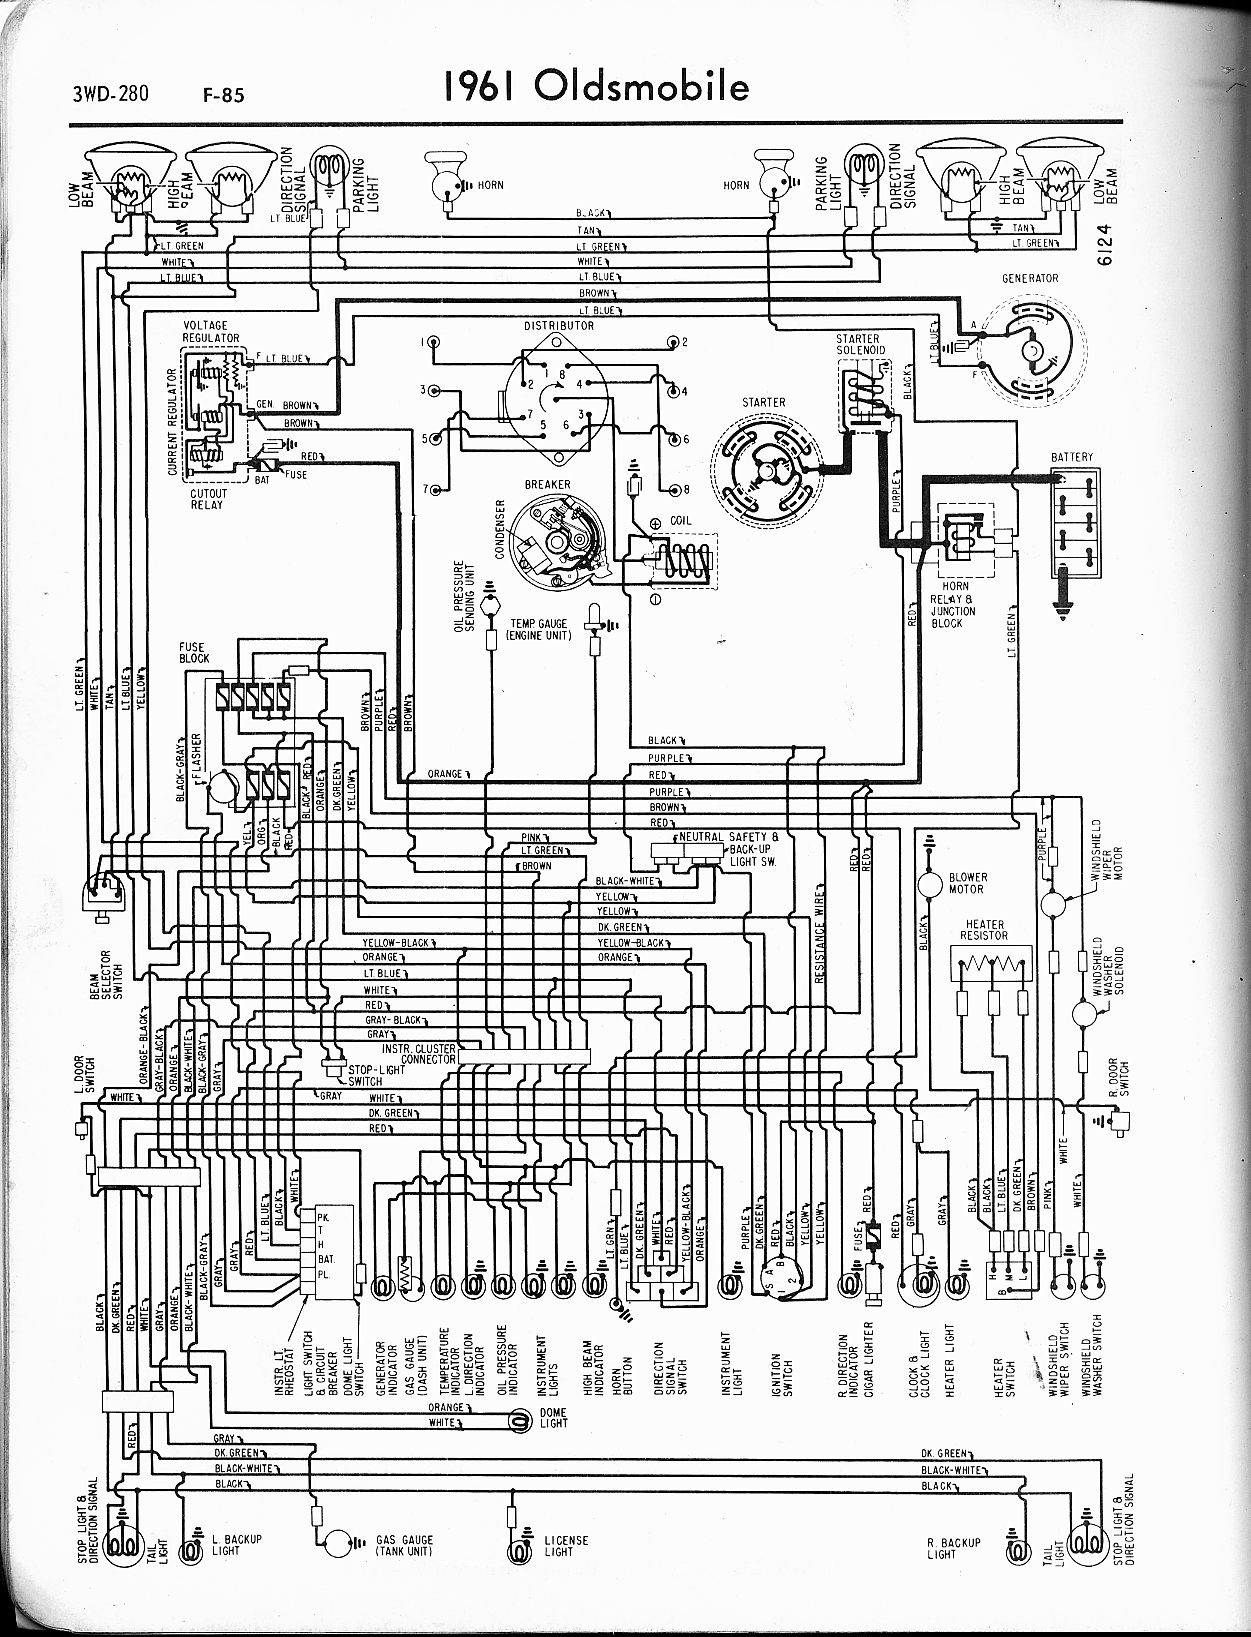 MWire5765 280 oldsmobile wiring diagrams the old car manual project Oldsmobile Aurora Power Steering Line at reclaimingppi.co